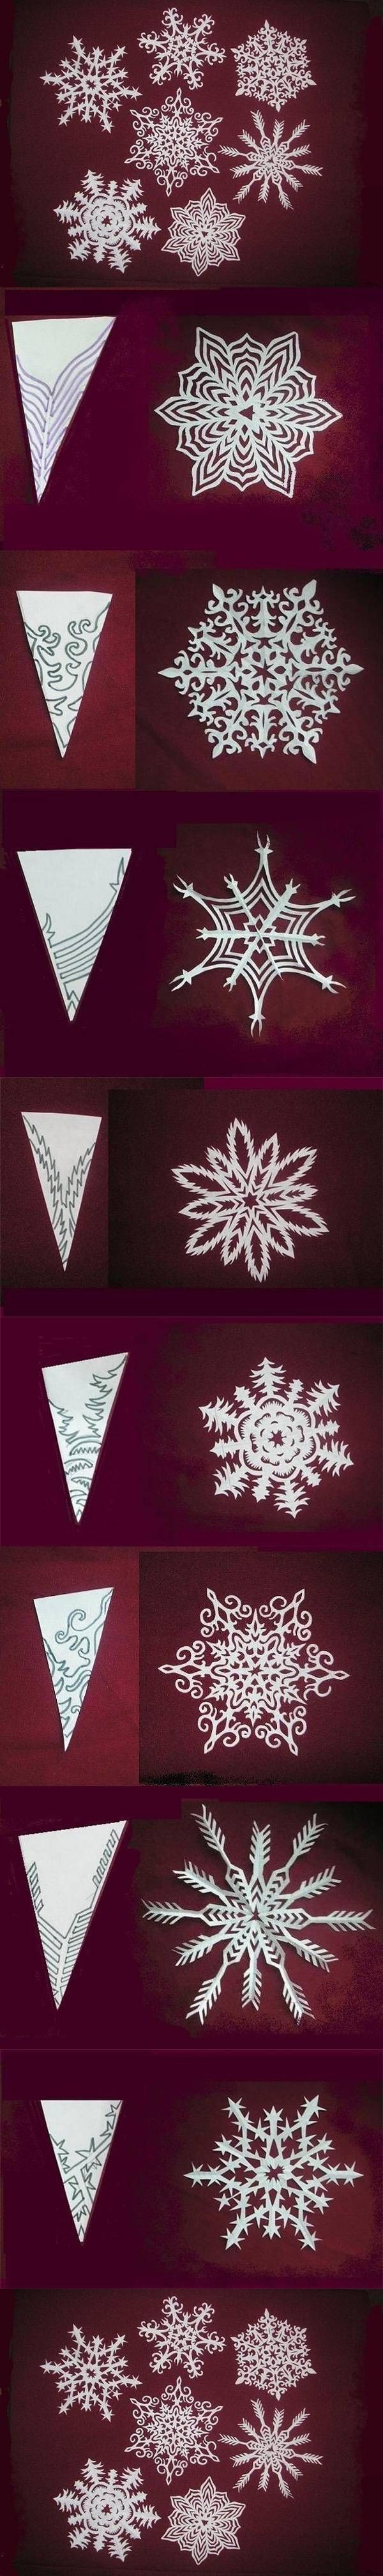 DIY Snowflakes Paper Pattern tutorial